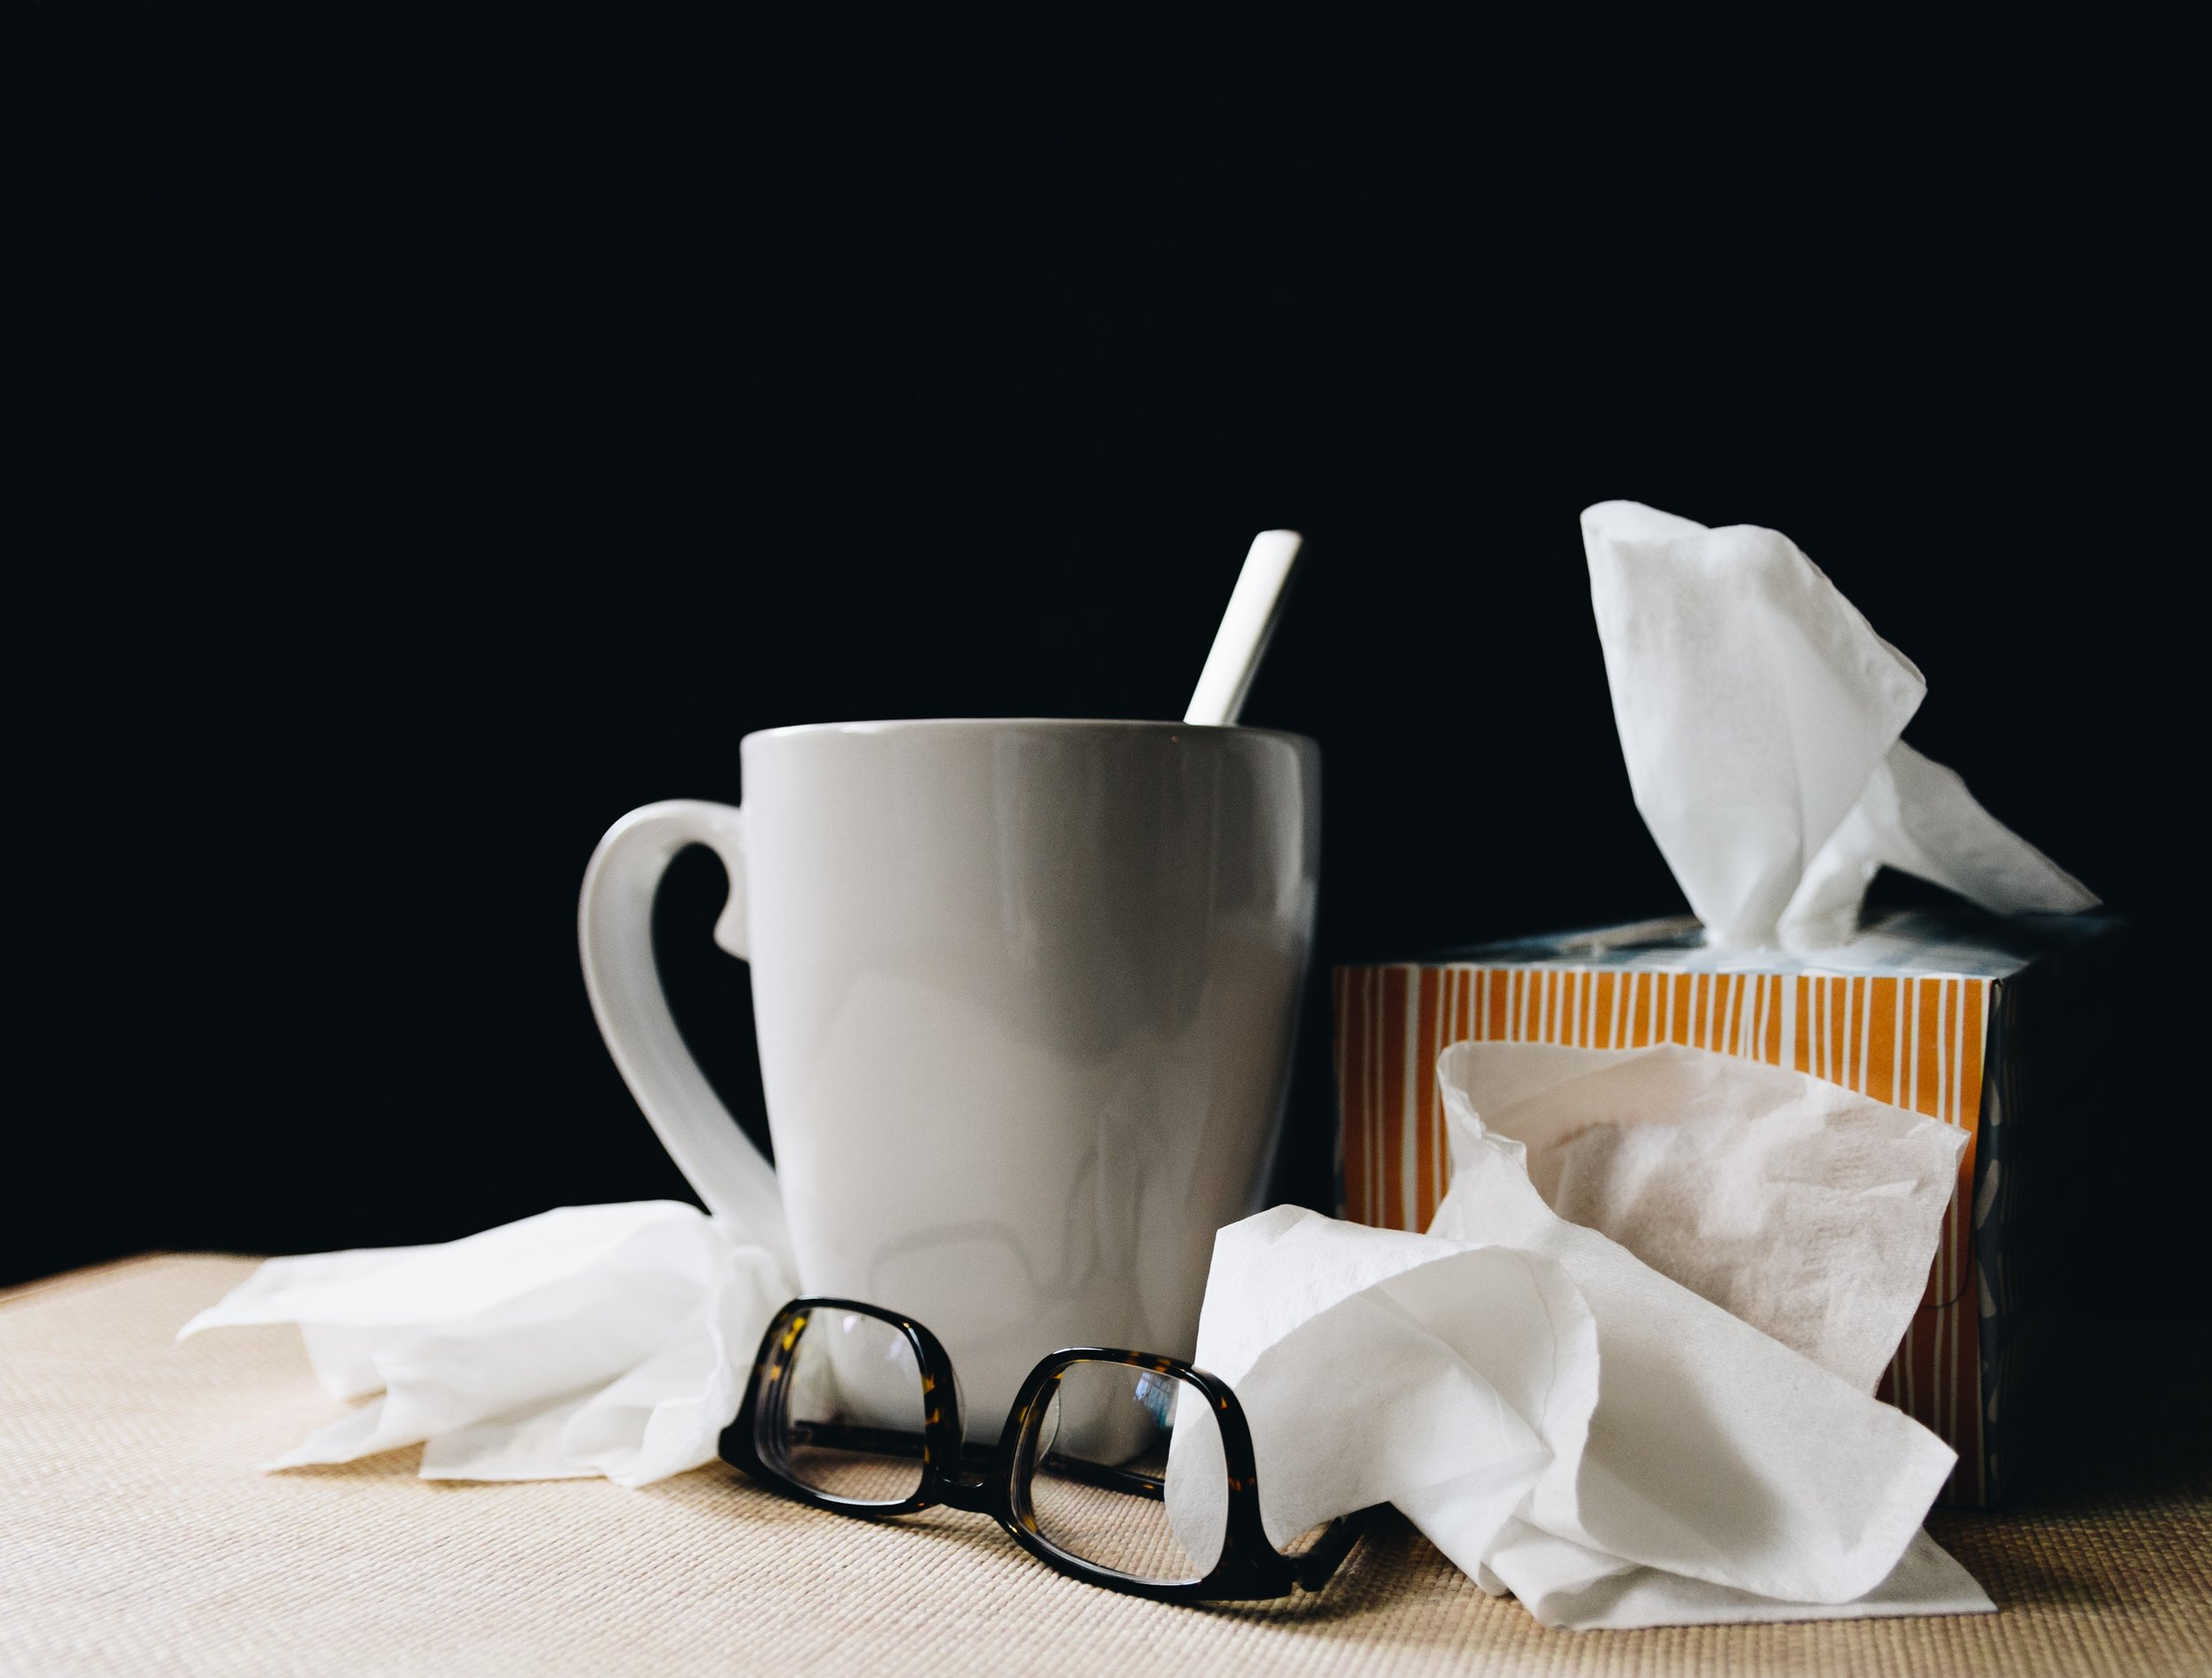 sick tissues and cup on table- unsplash.jpg